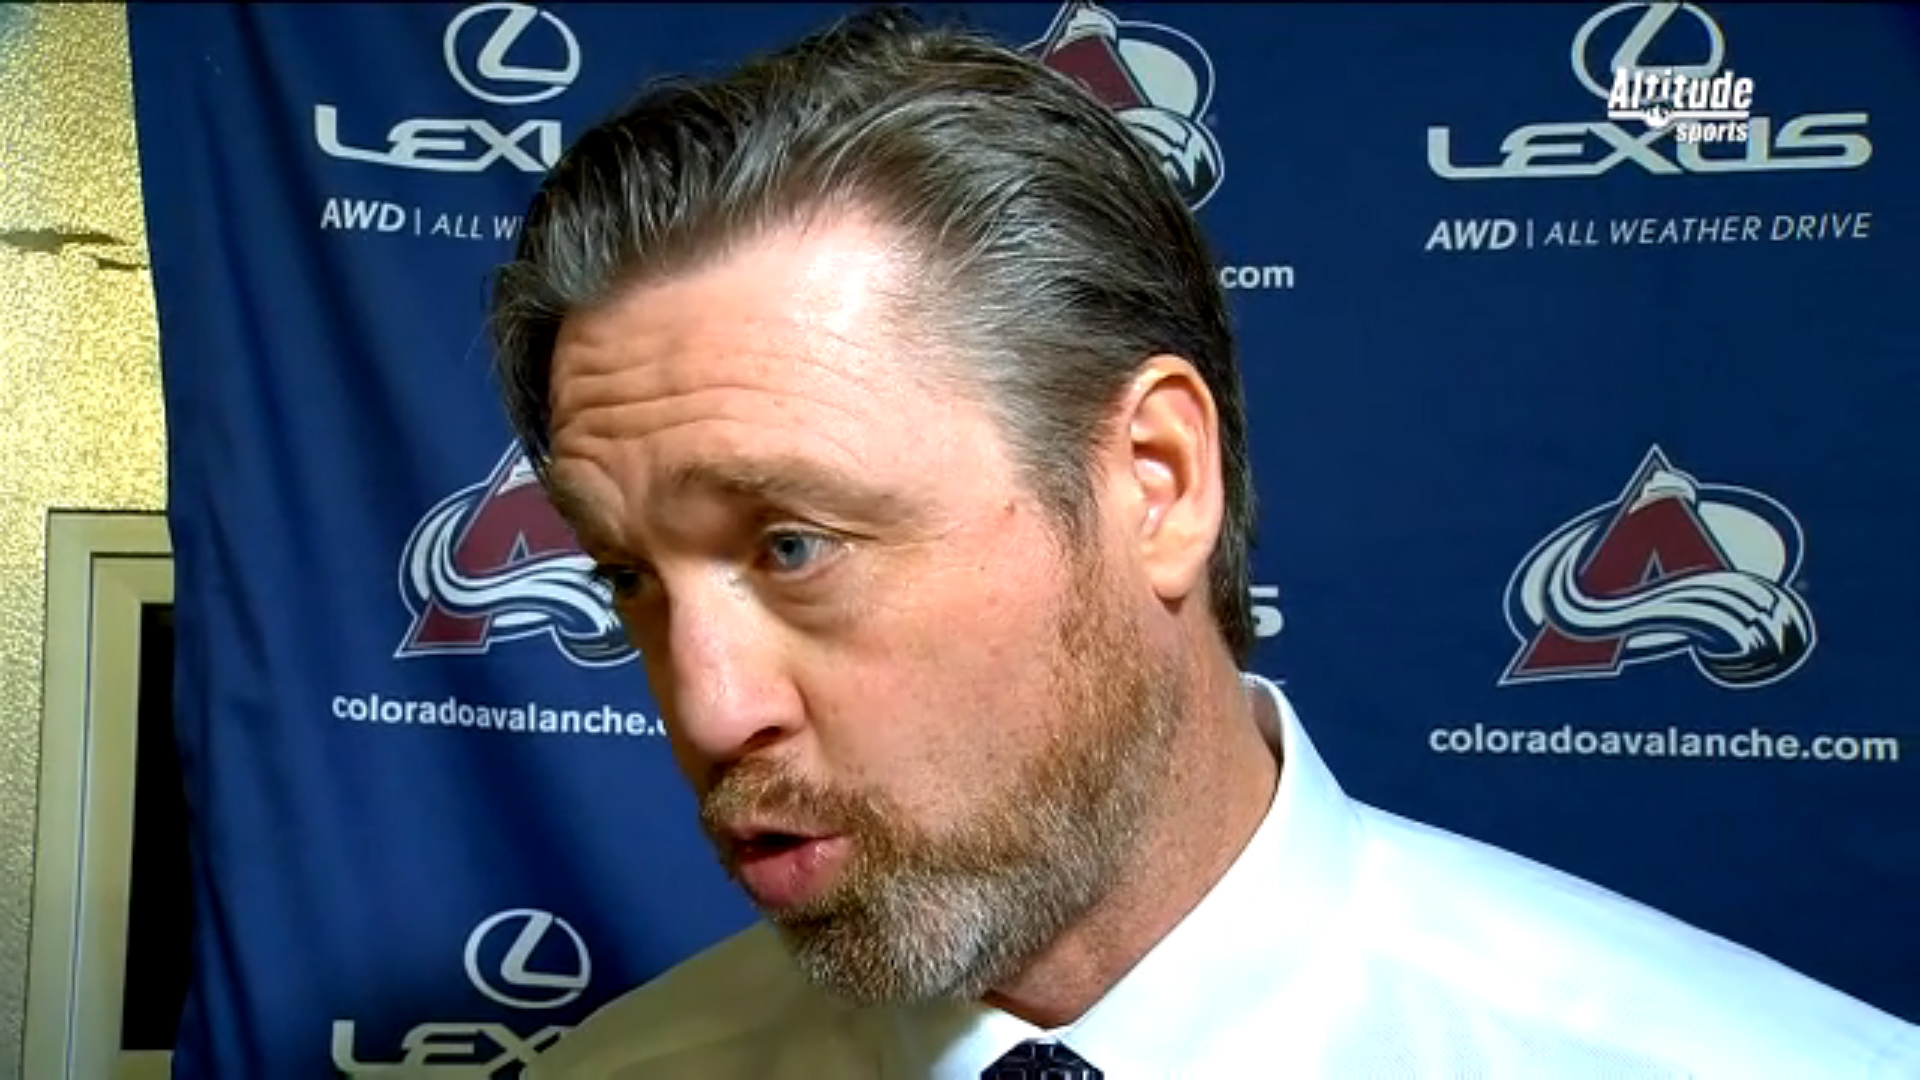 Patrick-Roy-Post-Game-012316.jpg